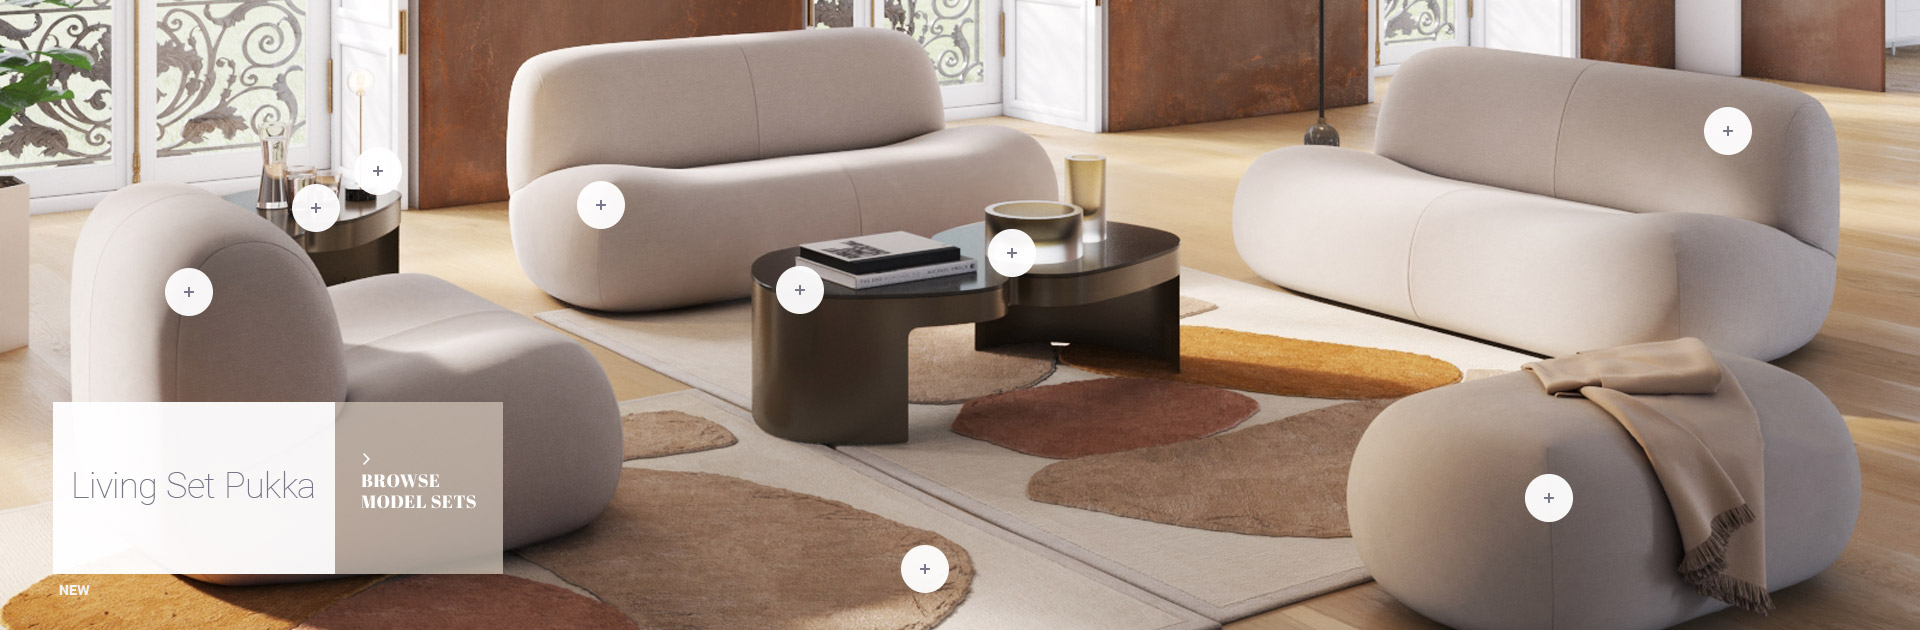 Design Connected 3d Models Of Furniture For Interior Design